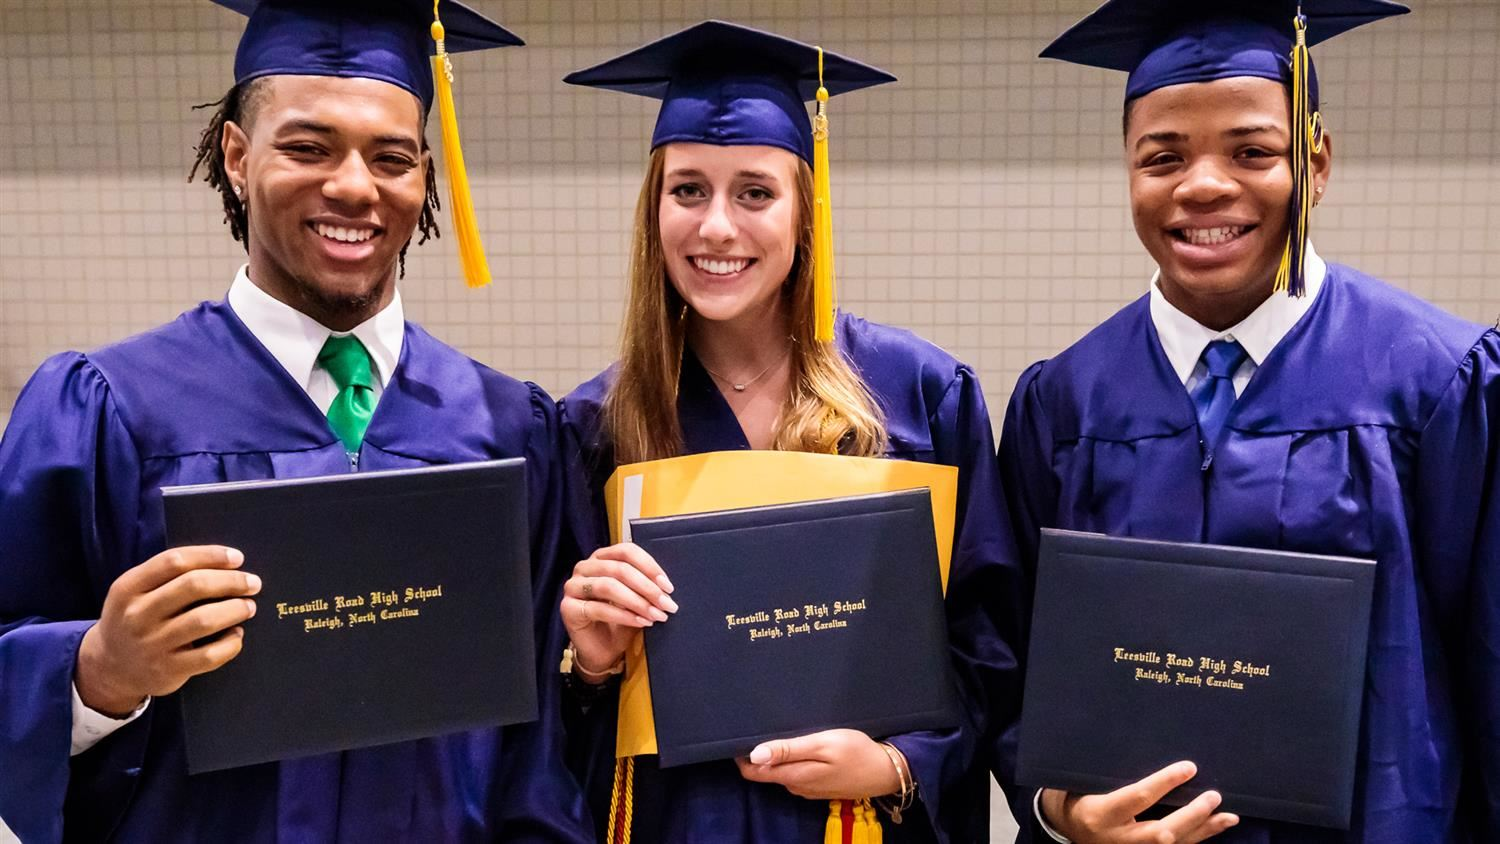 Brand new high school grads show off their diplomas